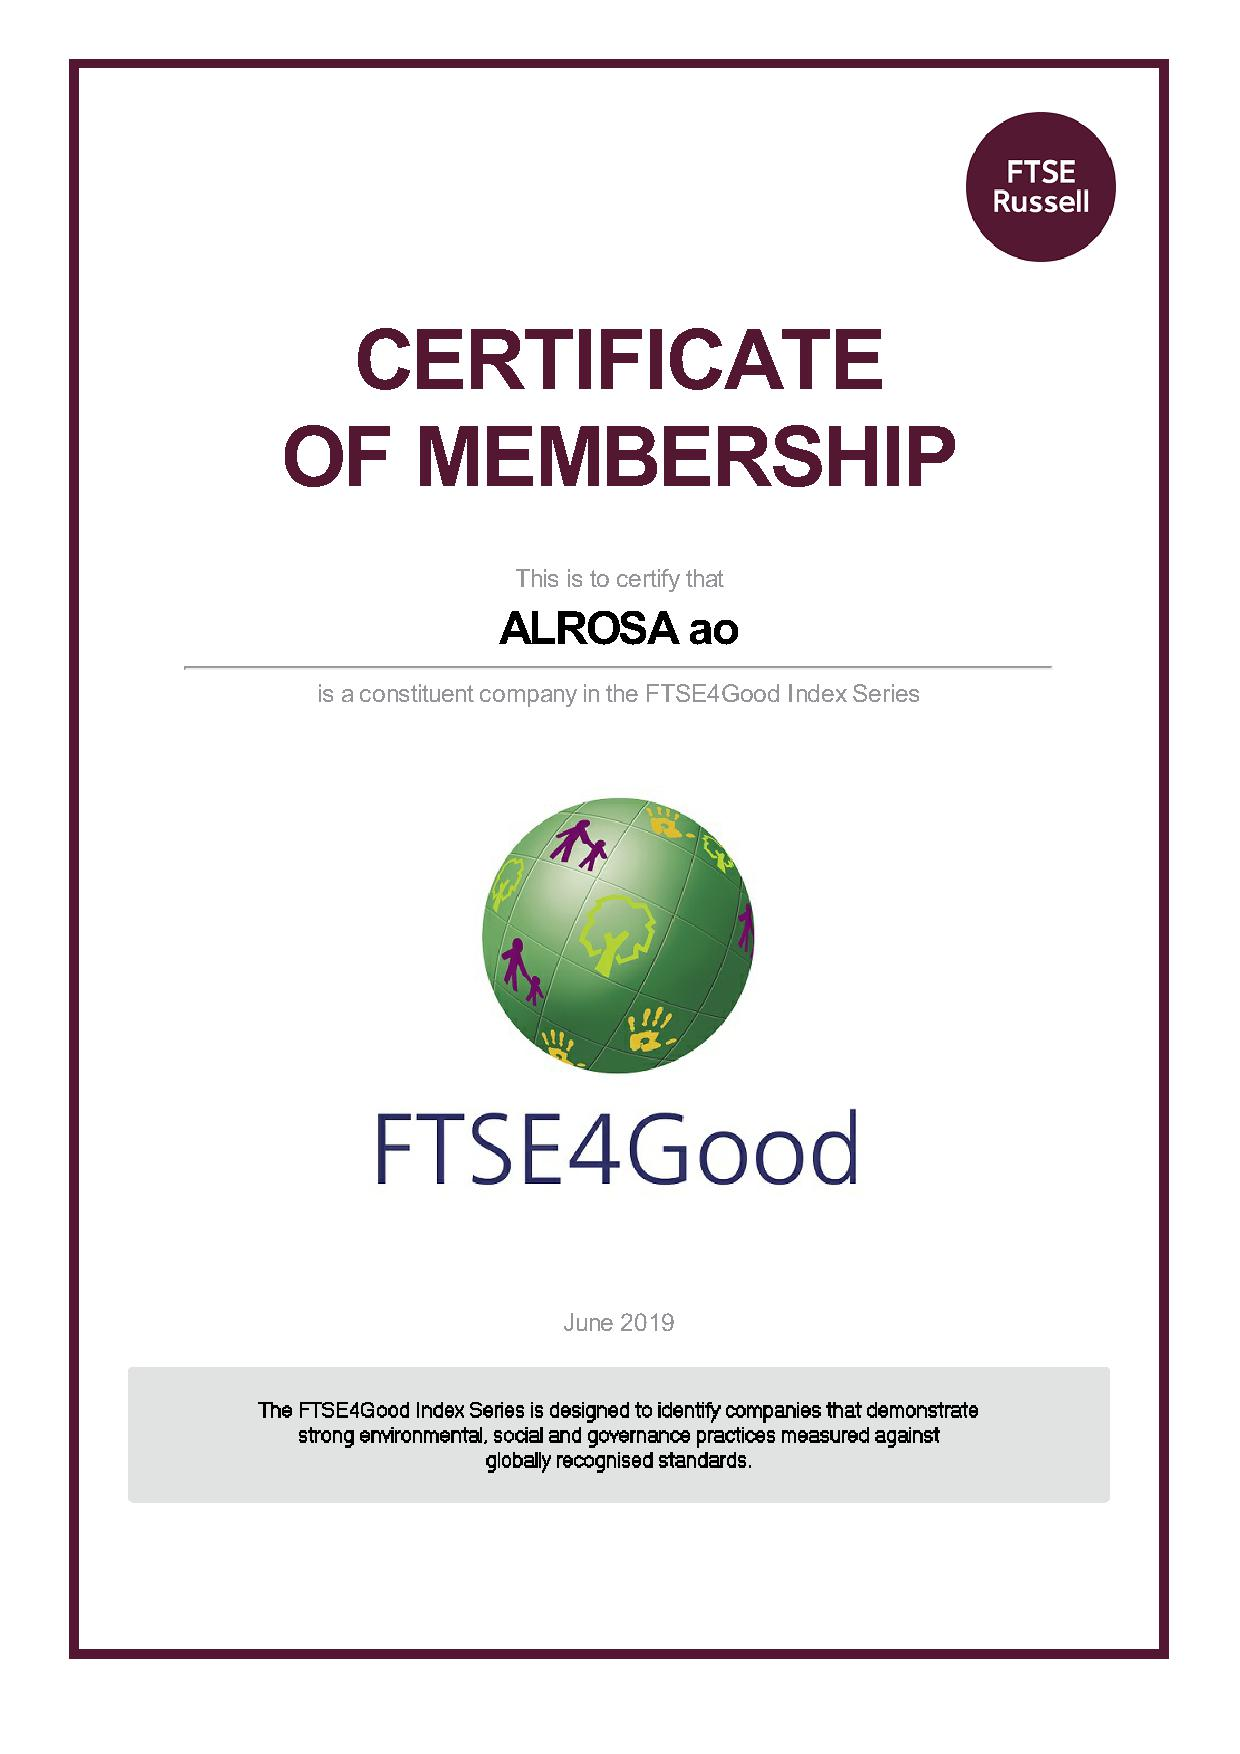 ALROSA remains constituent of FTSE4Good Index Series | Alrosa